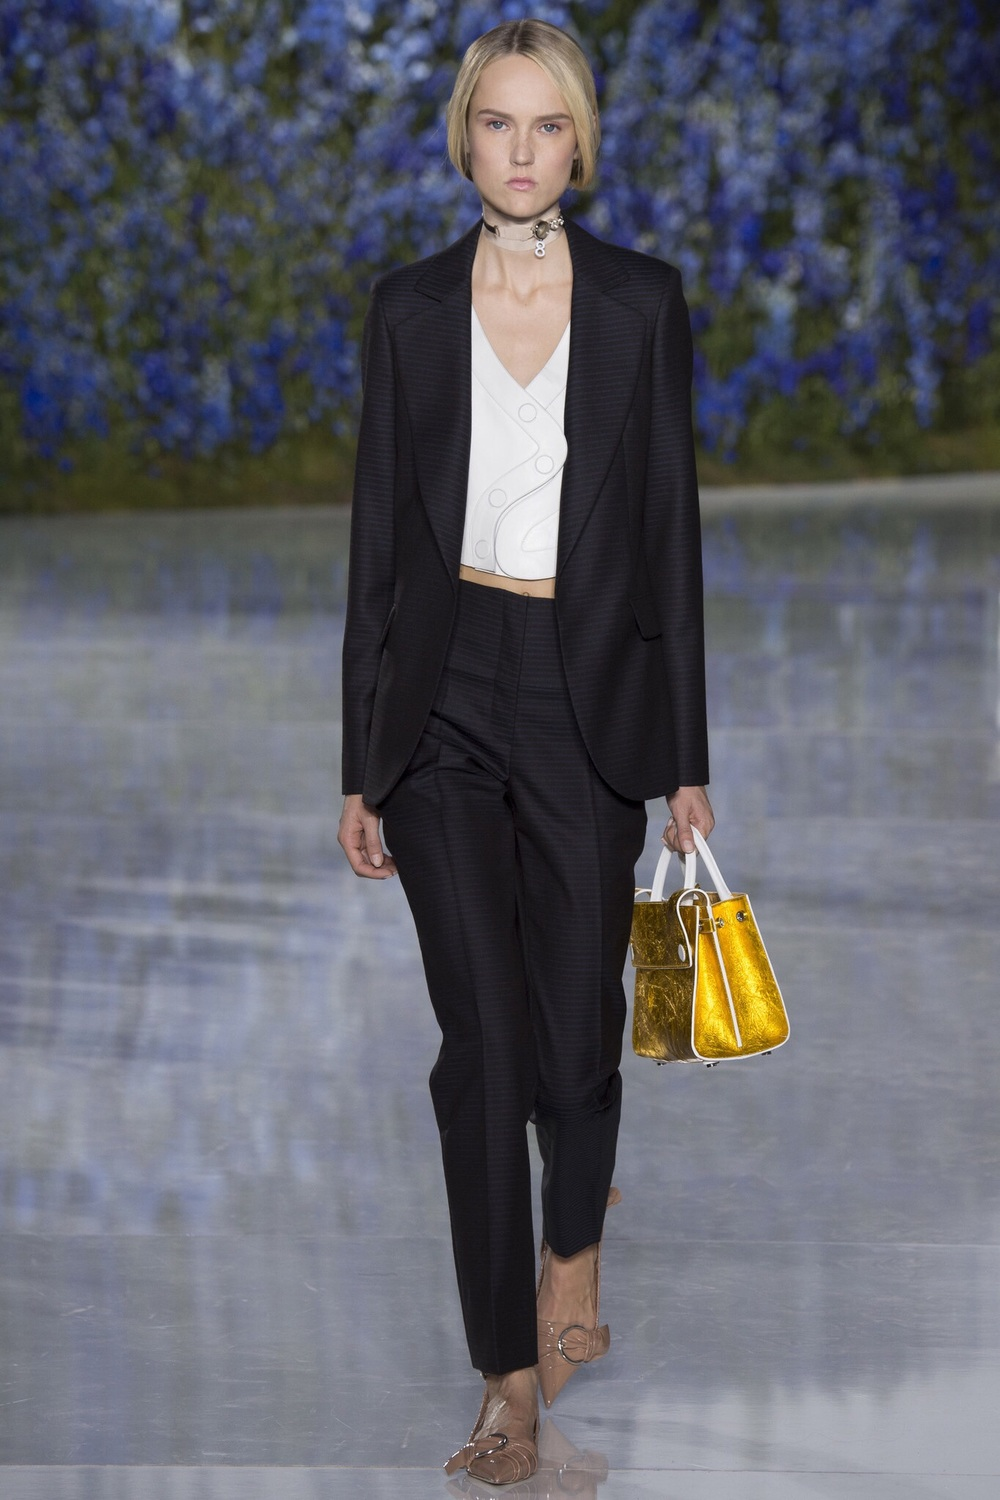 Christian Dior, Look #20 http://www.vogue.com/fashion-shows/spring-2016-ready-to-wear/christian-dior/slideshow/collection#20?mbid=ios_share